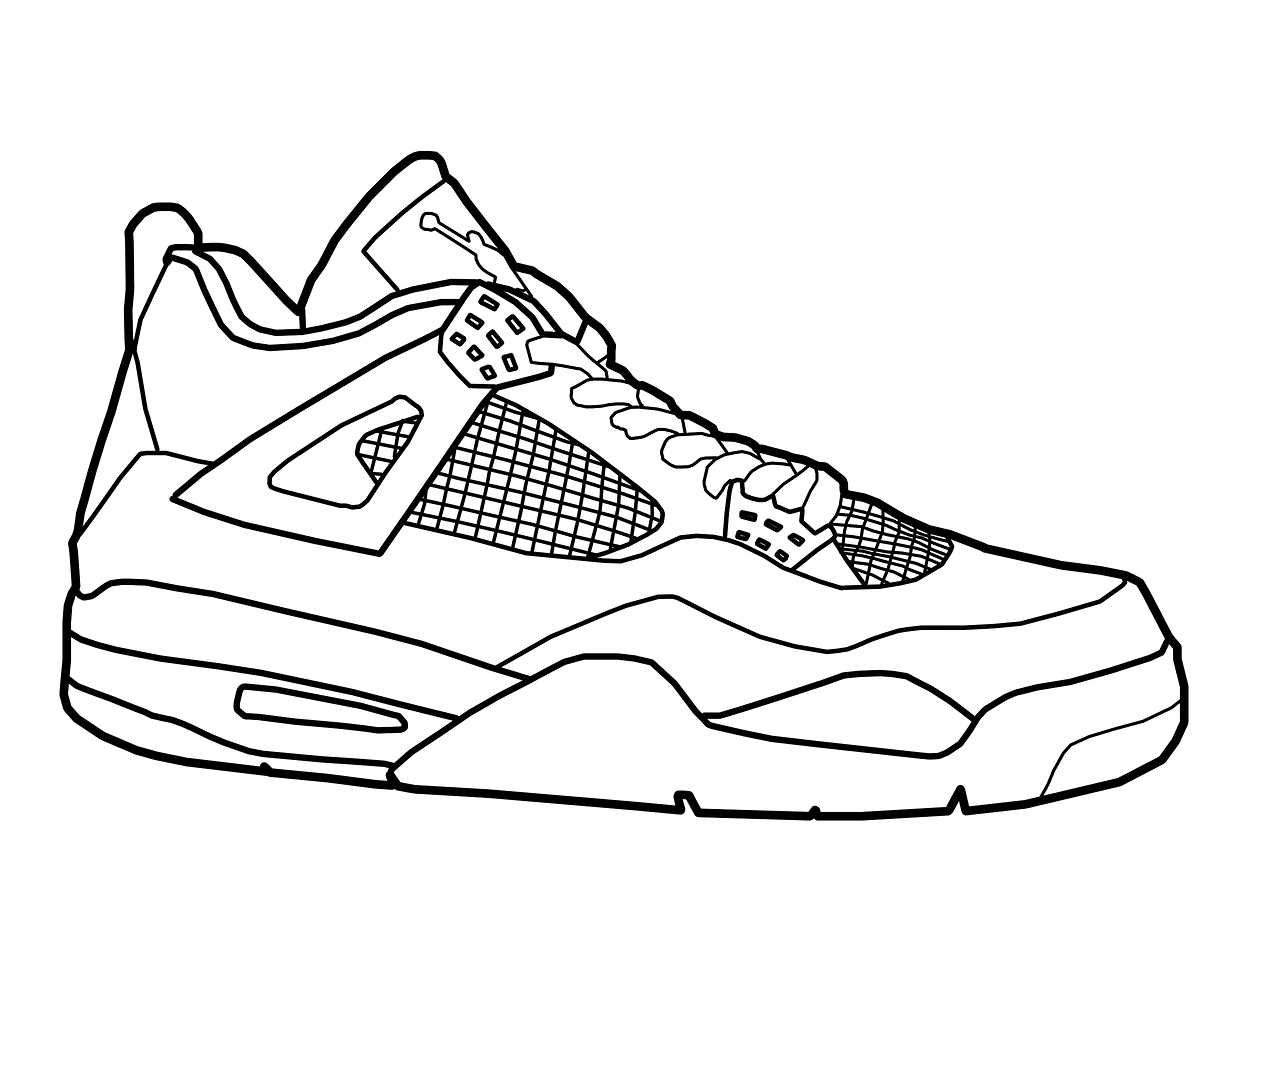 jordan 12 coloring pages - coloring pages book for kids boys images 19 Basketball Shoes air jordan at coloring pages book for kids boys